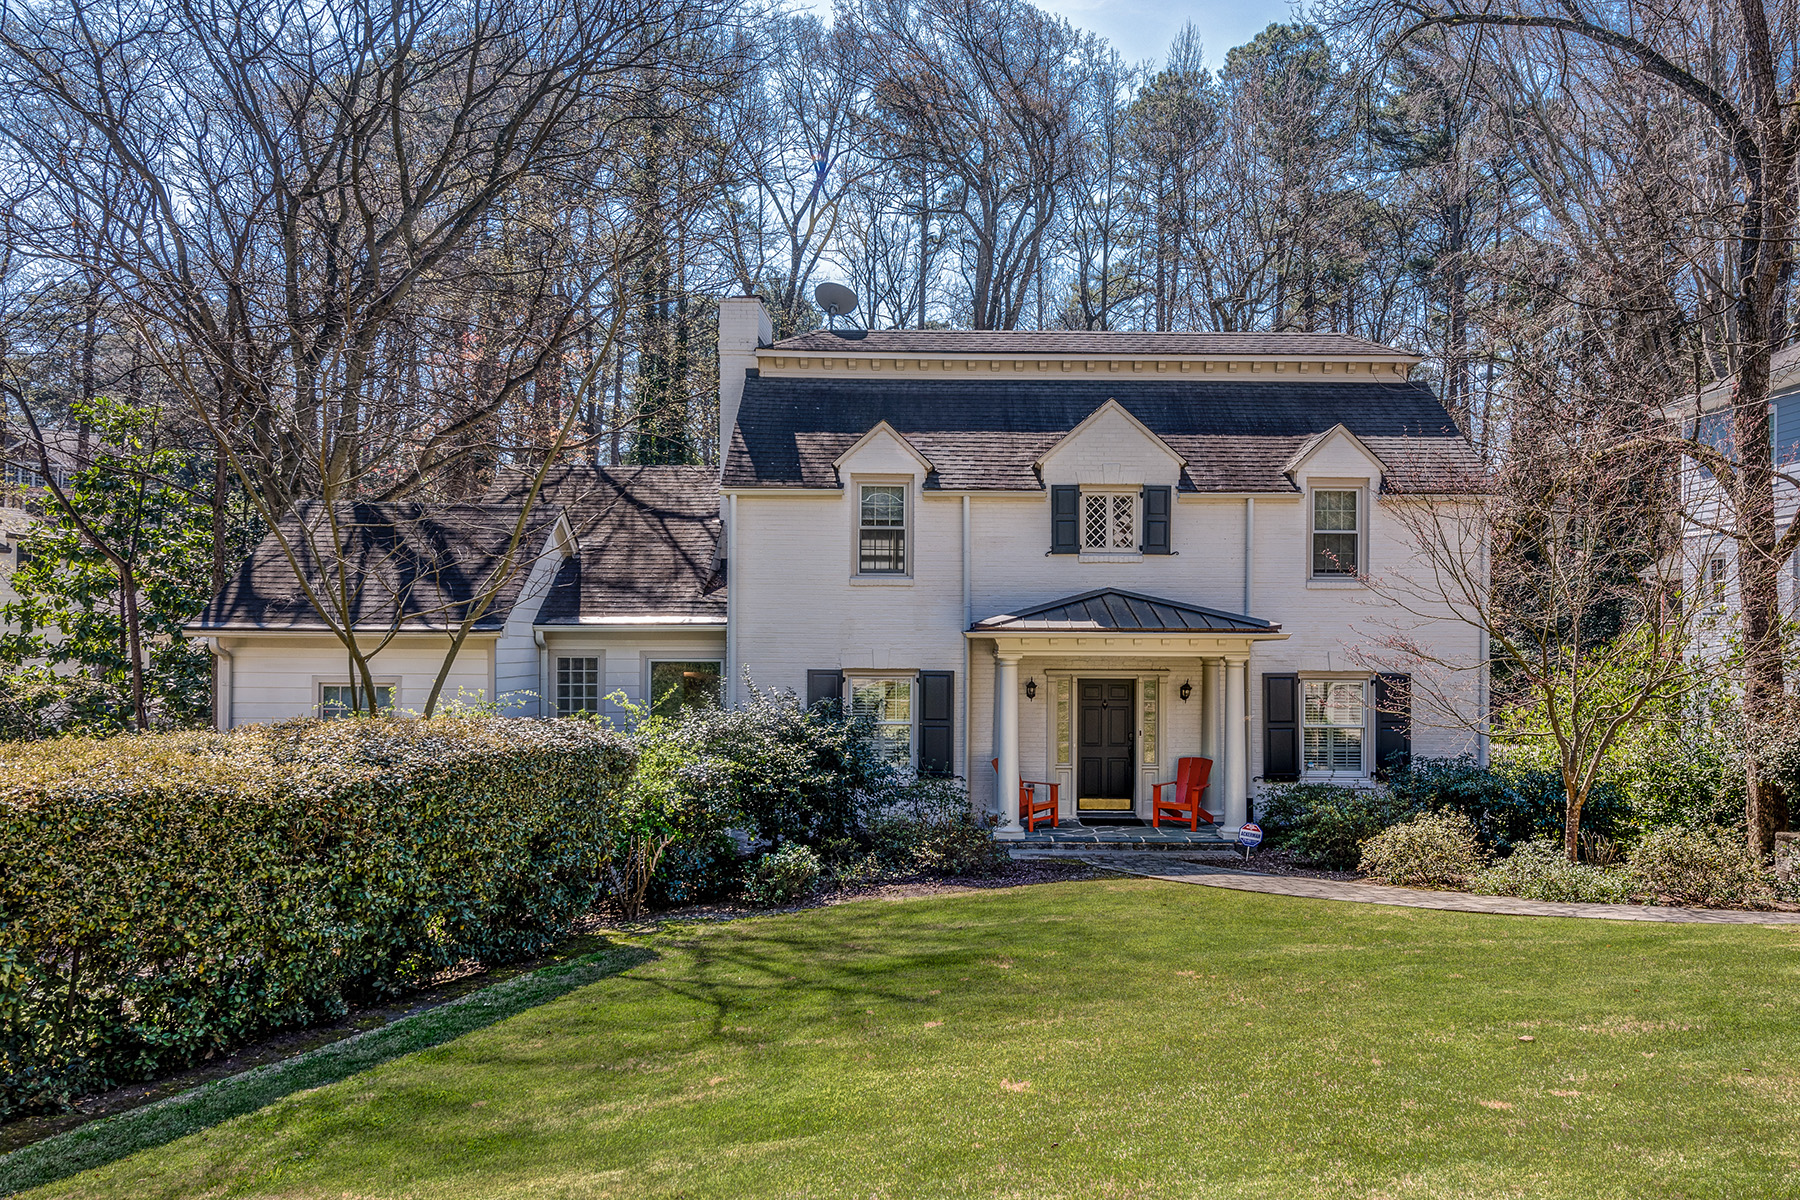 Single Family Home for Sale at Renovated Showstopper In Peachtree Park 755 Greenview Avenue NE, Peachtree Park, Atlanta, Georgia, 30305 United States